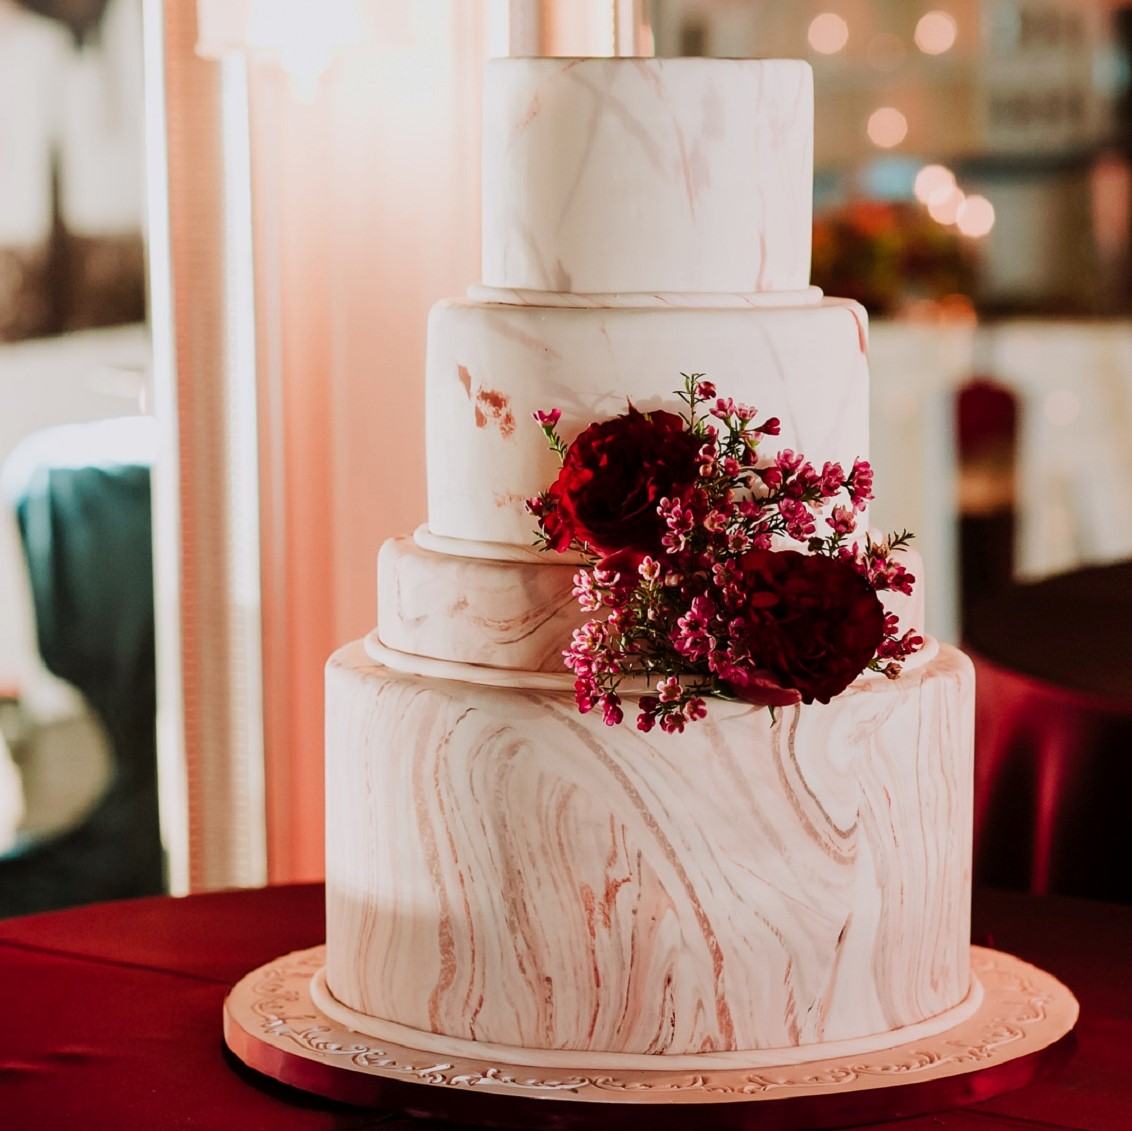 Model wedding cake with burgundy details.